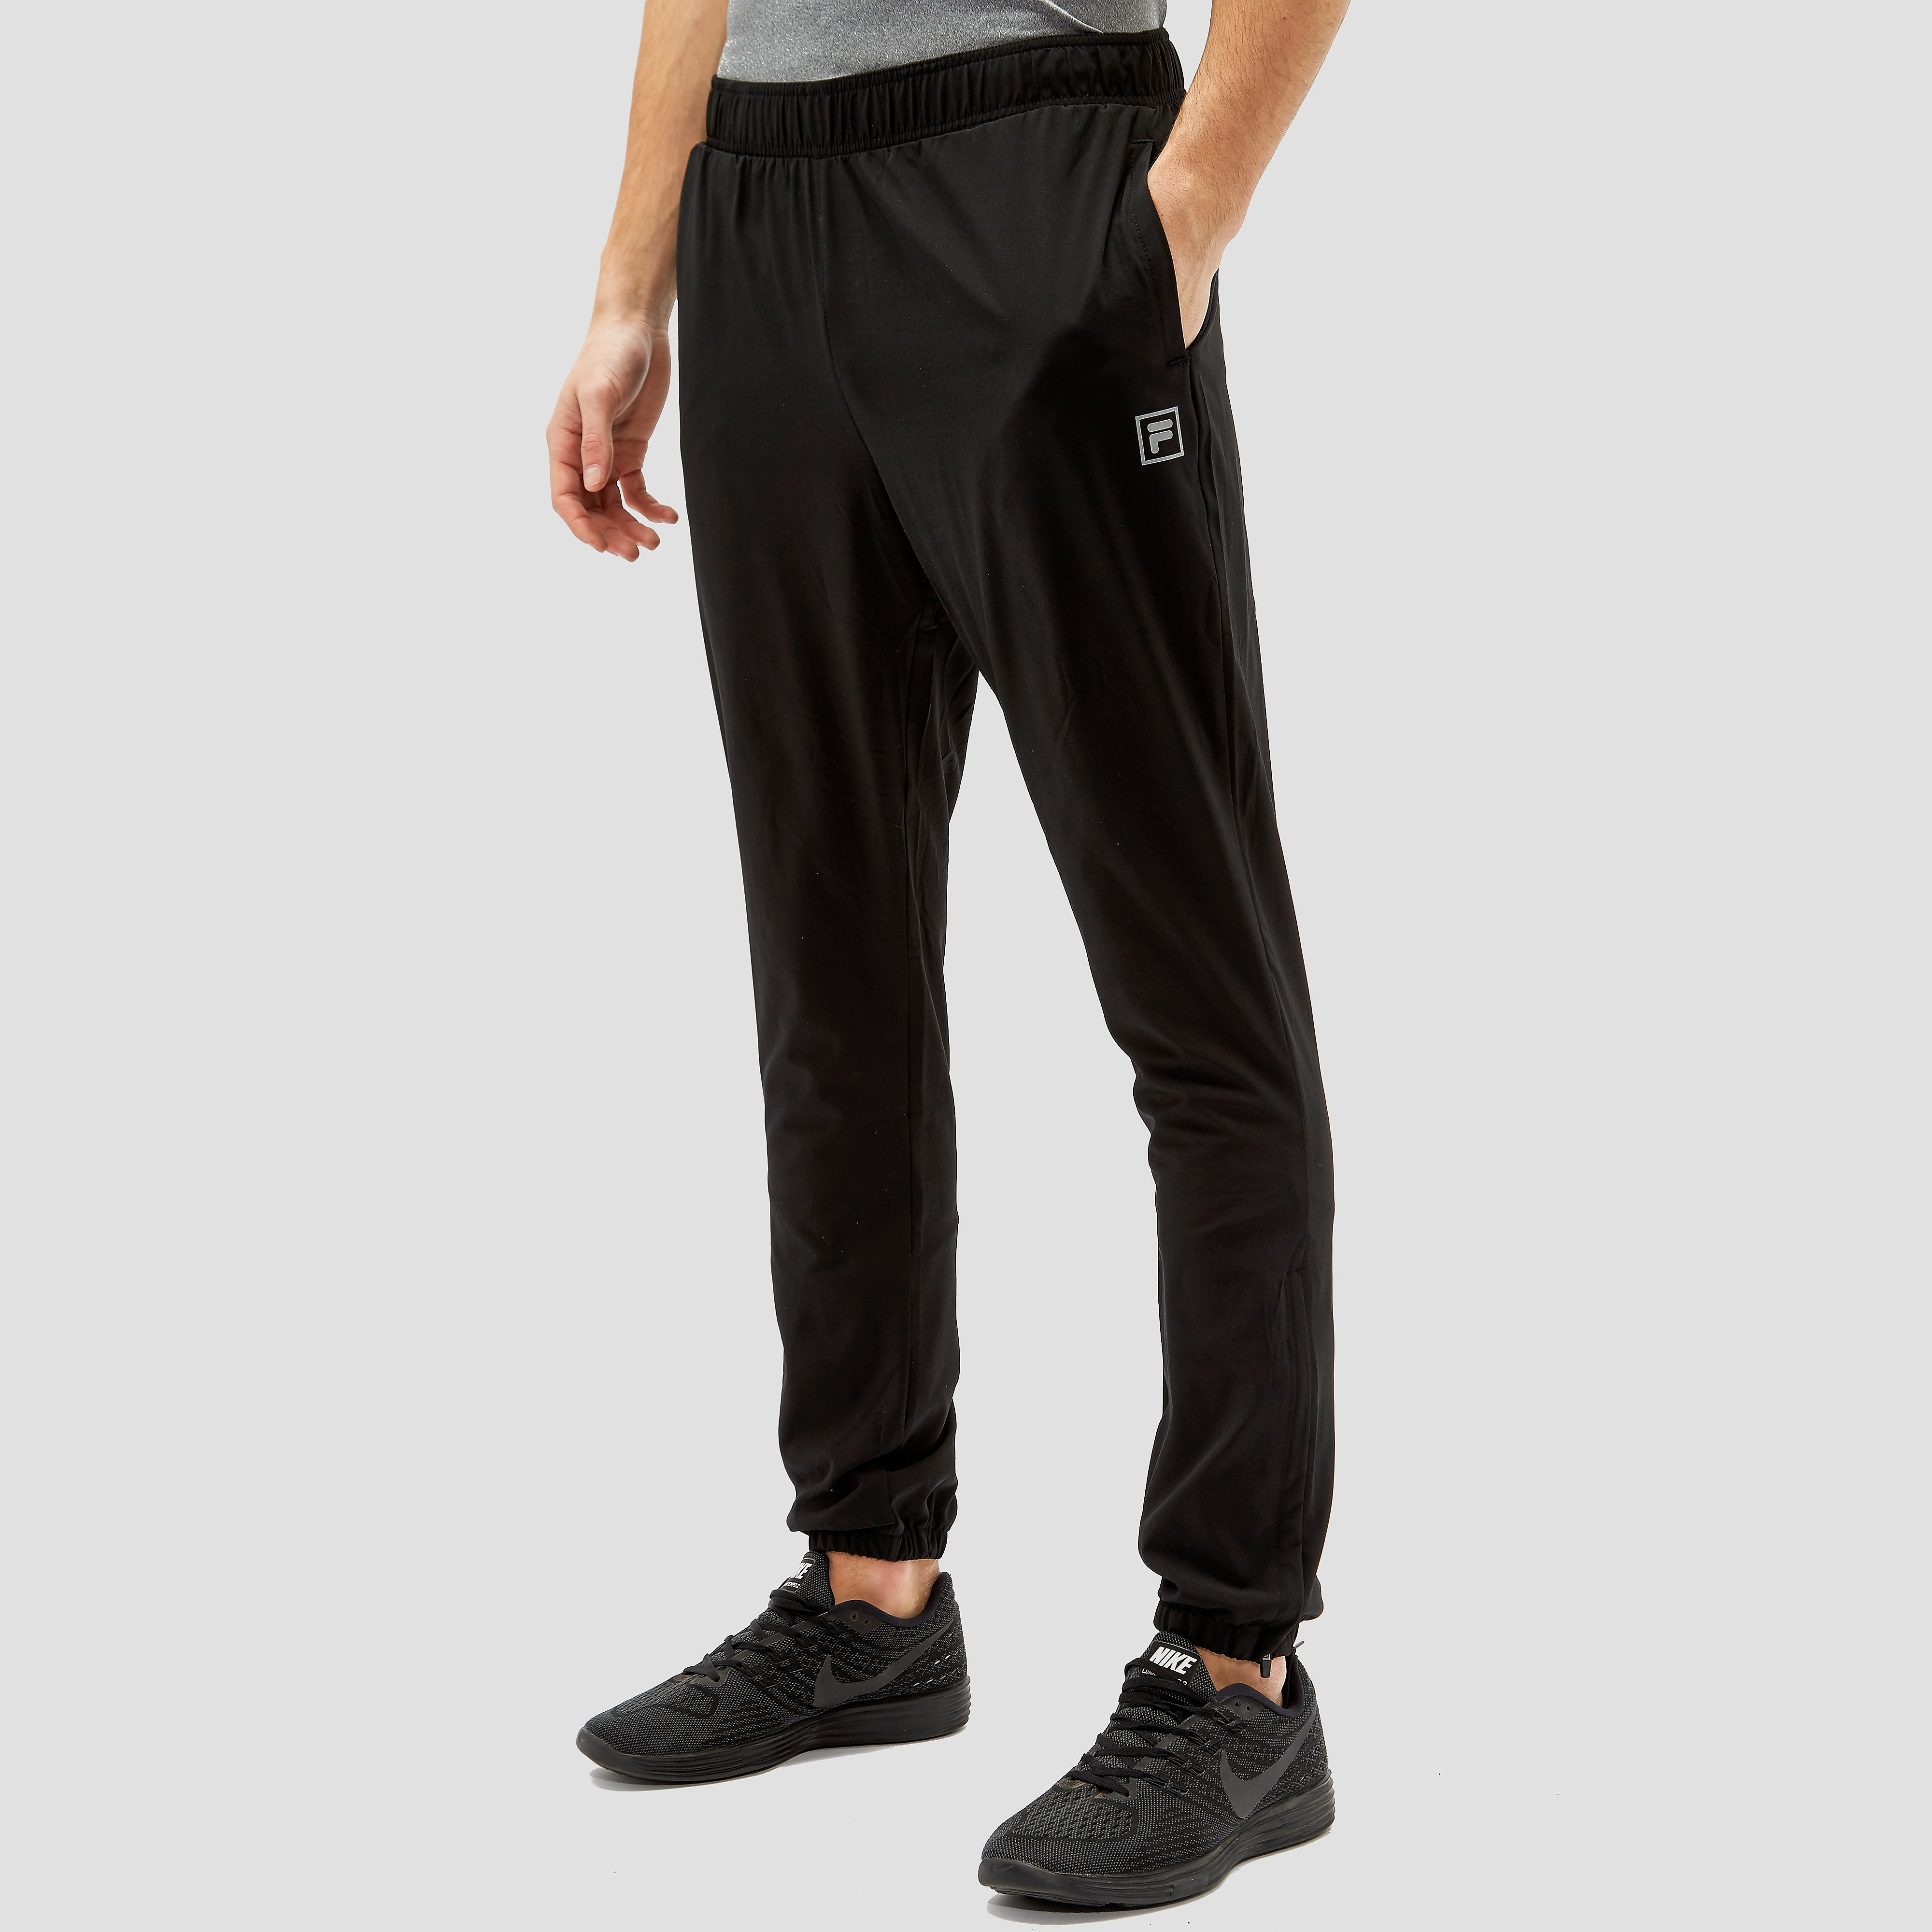 FILA PETRONA JOGGINGBROEK HEREN